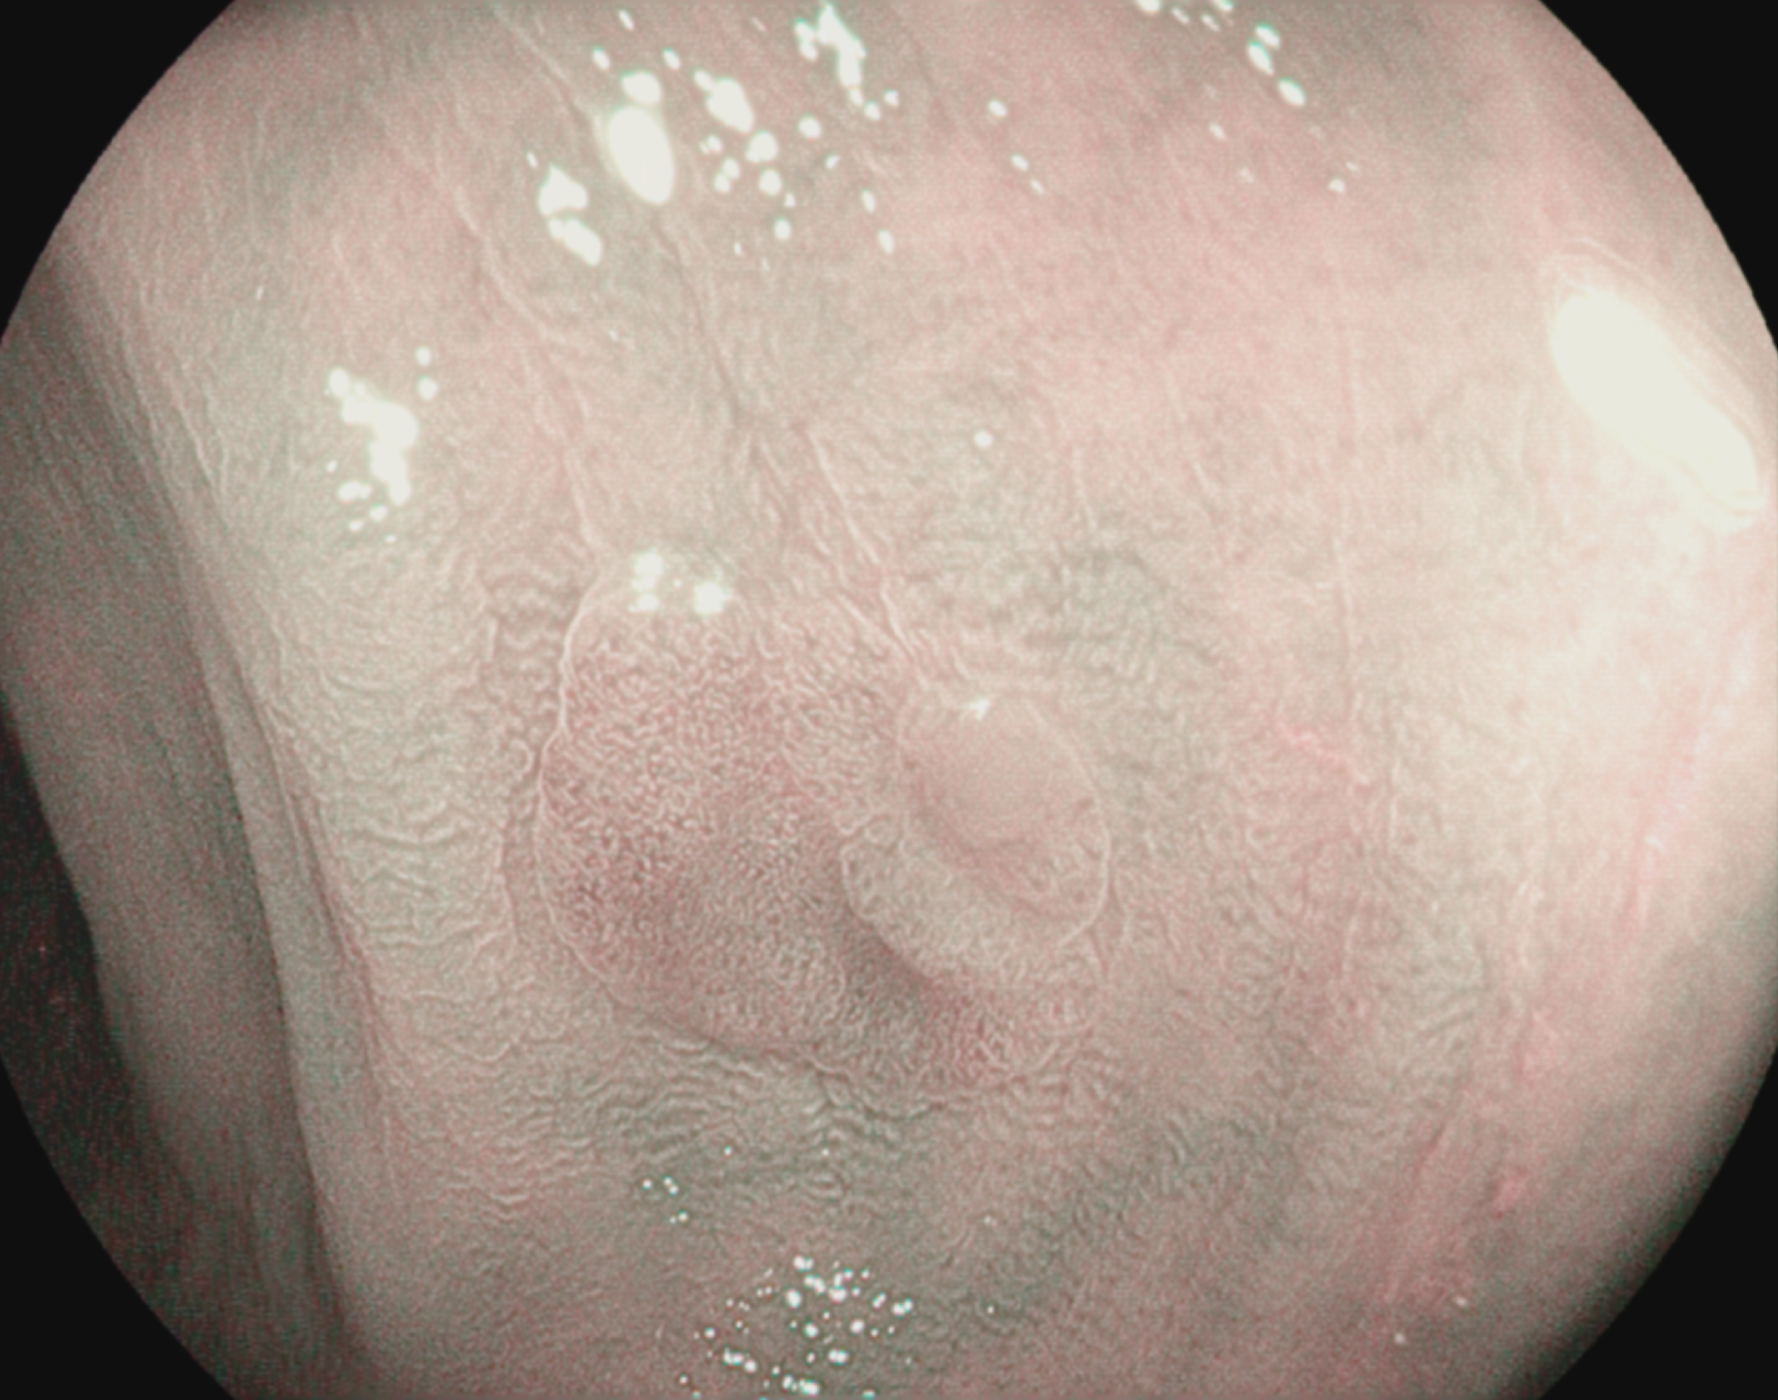 Tubular adenoma with low-grade dysplasia